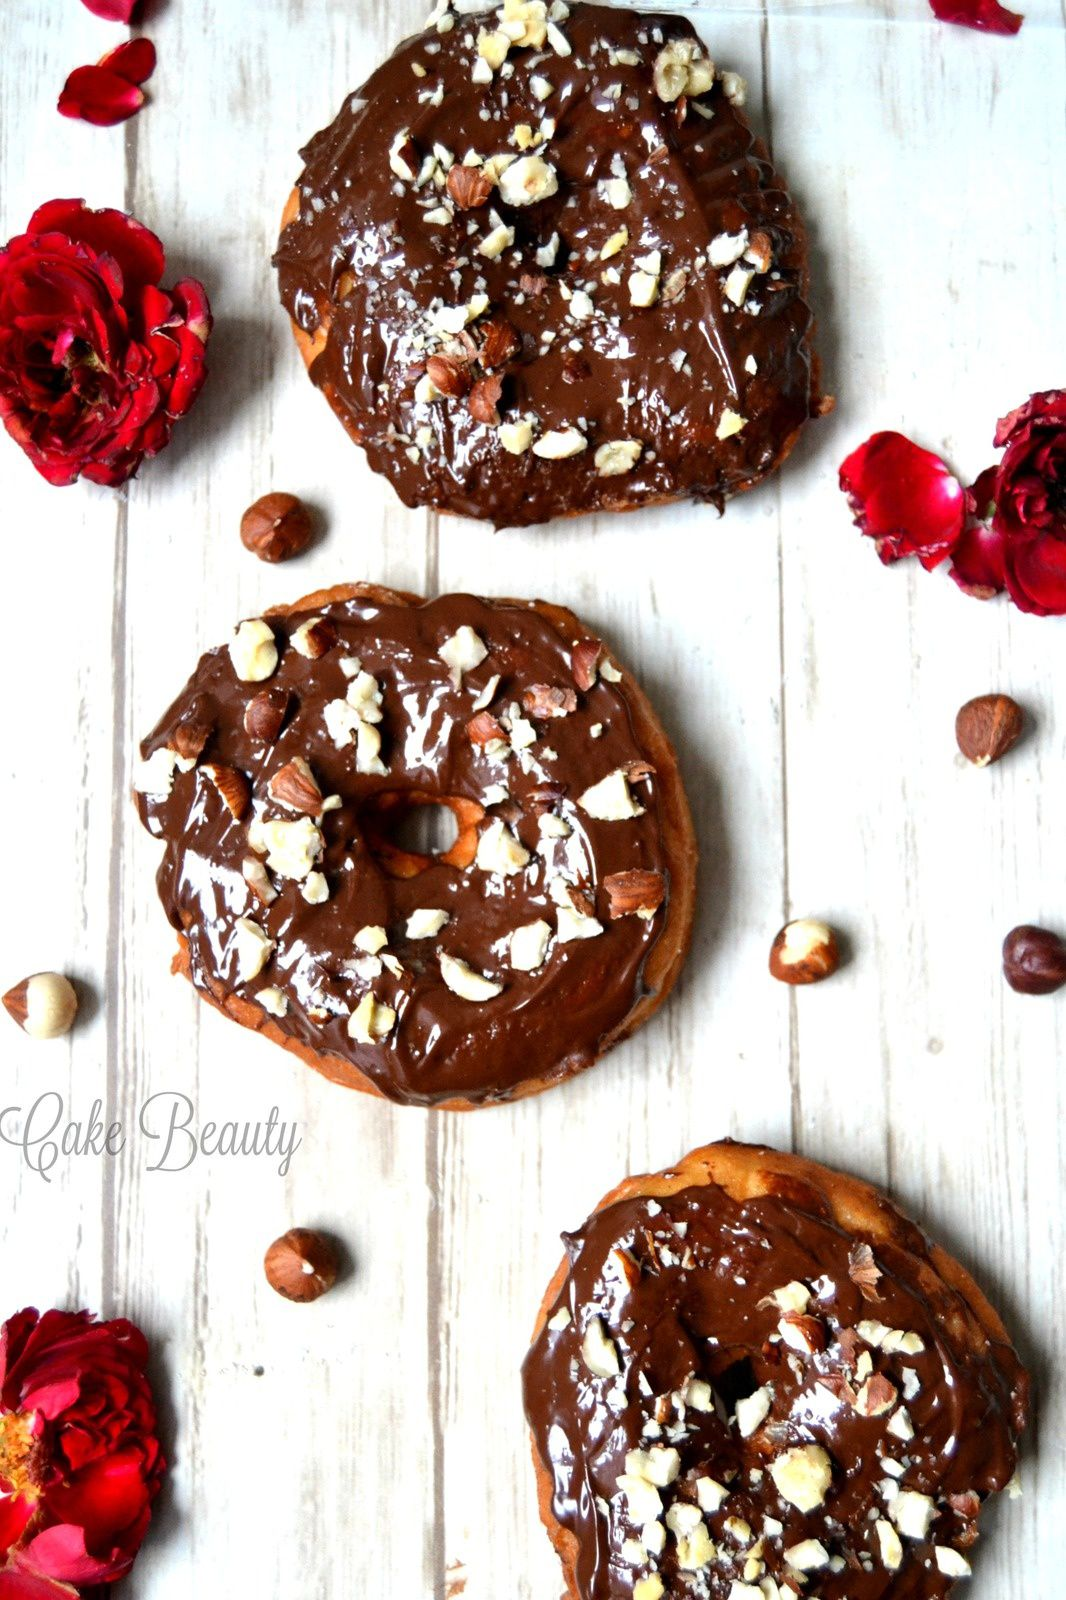 Donuts Choco Noisette